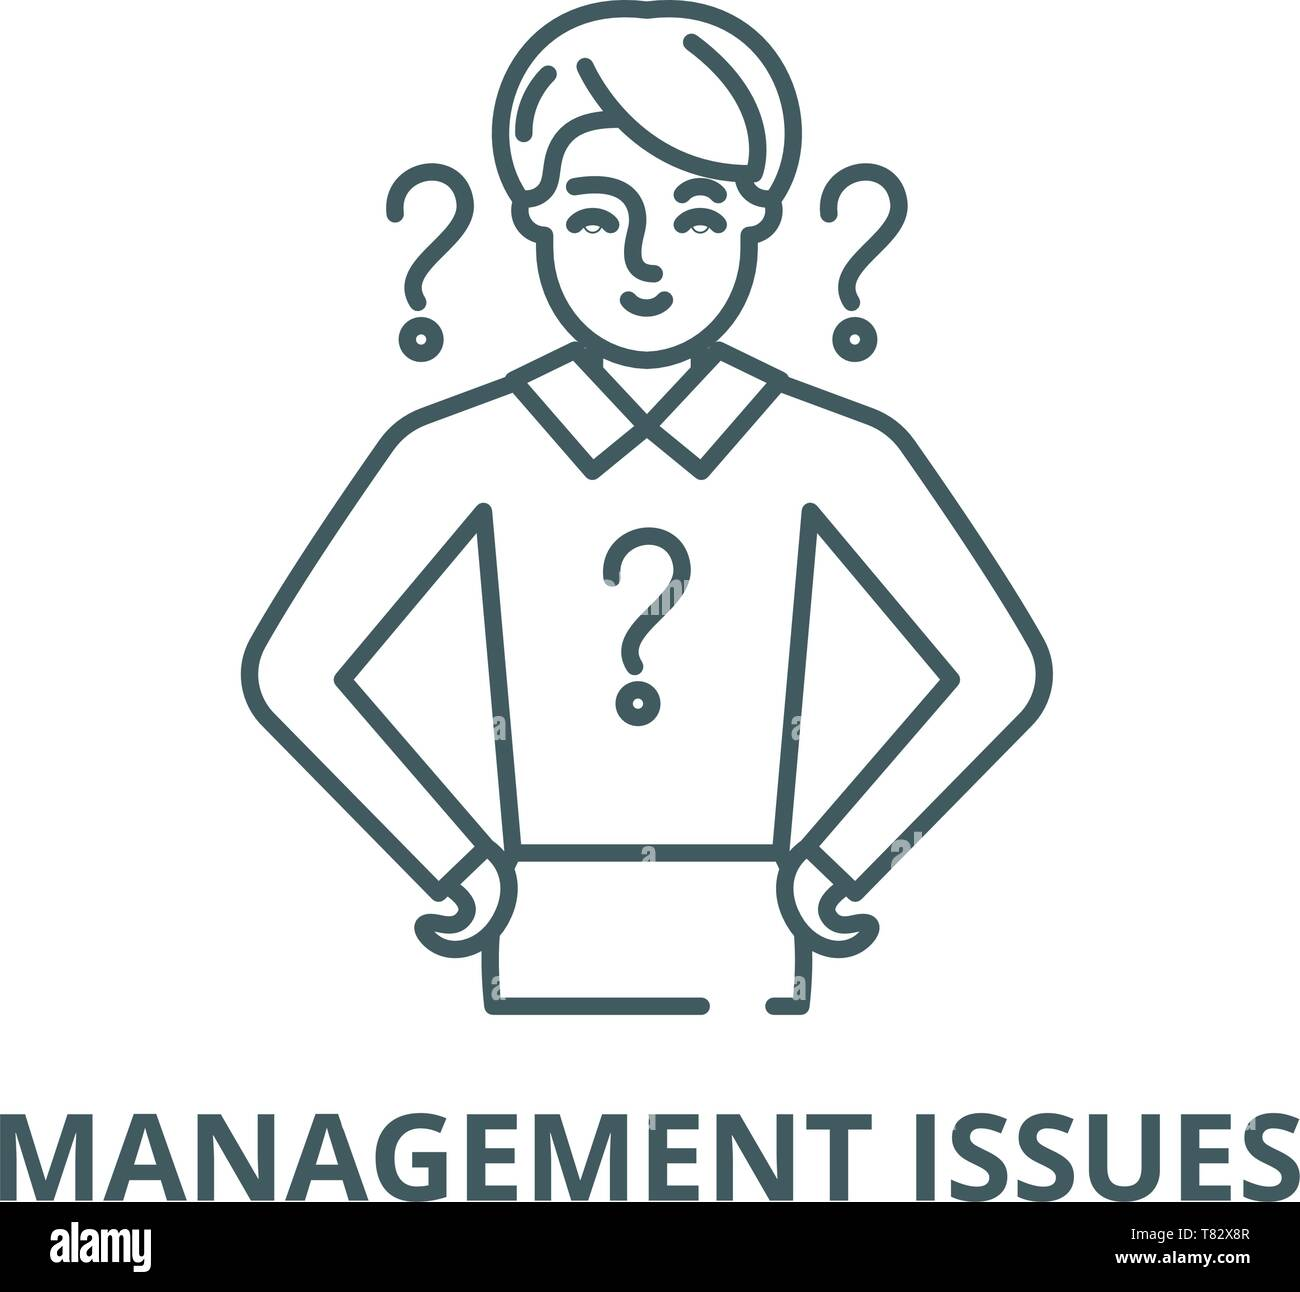 Management issues vector line icon, linear concept, outline sign, symbol - Stock Vector